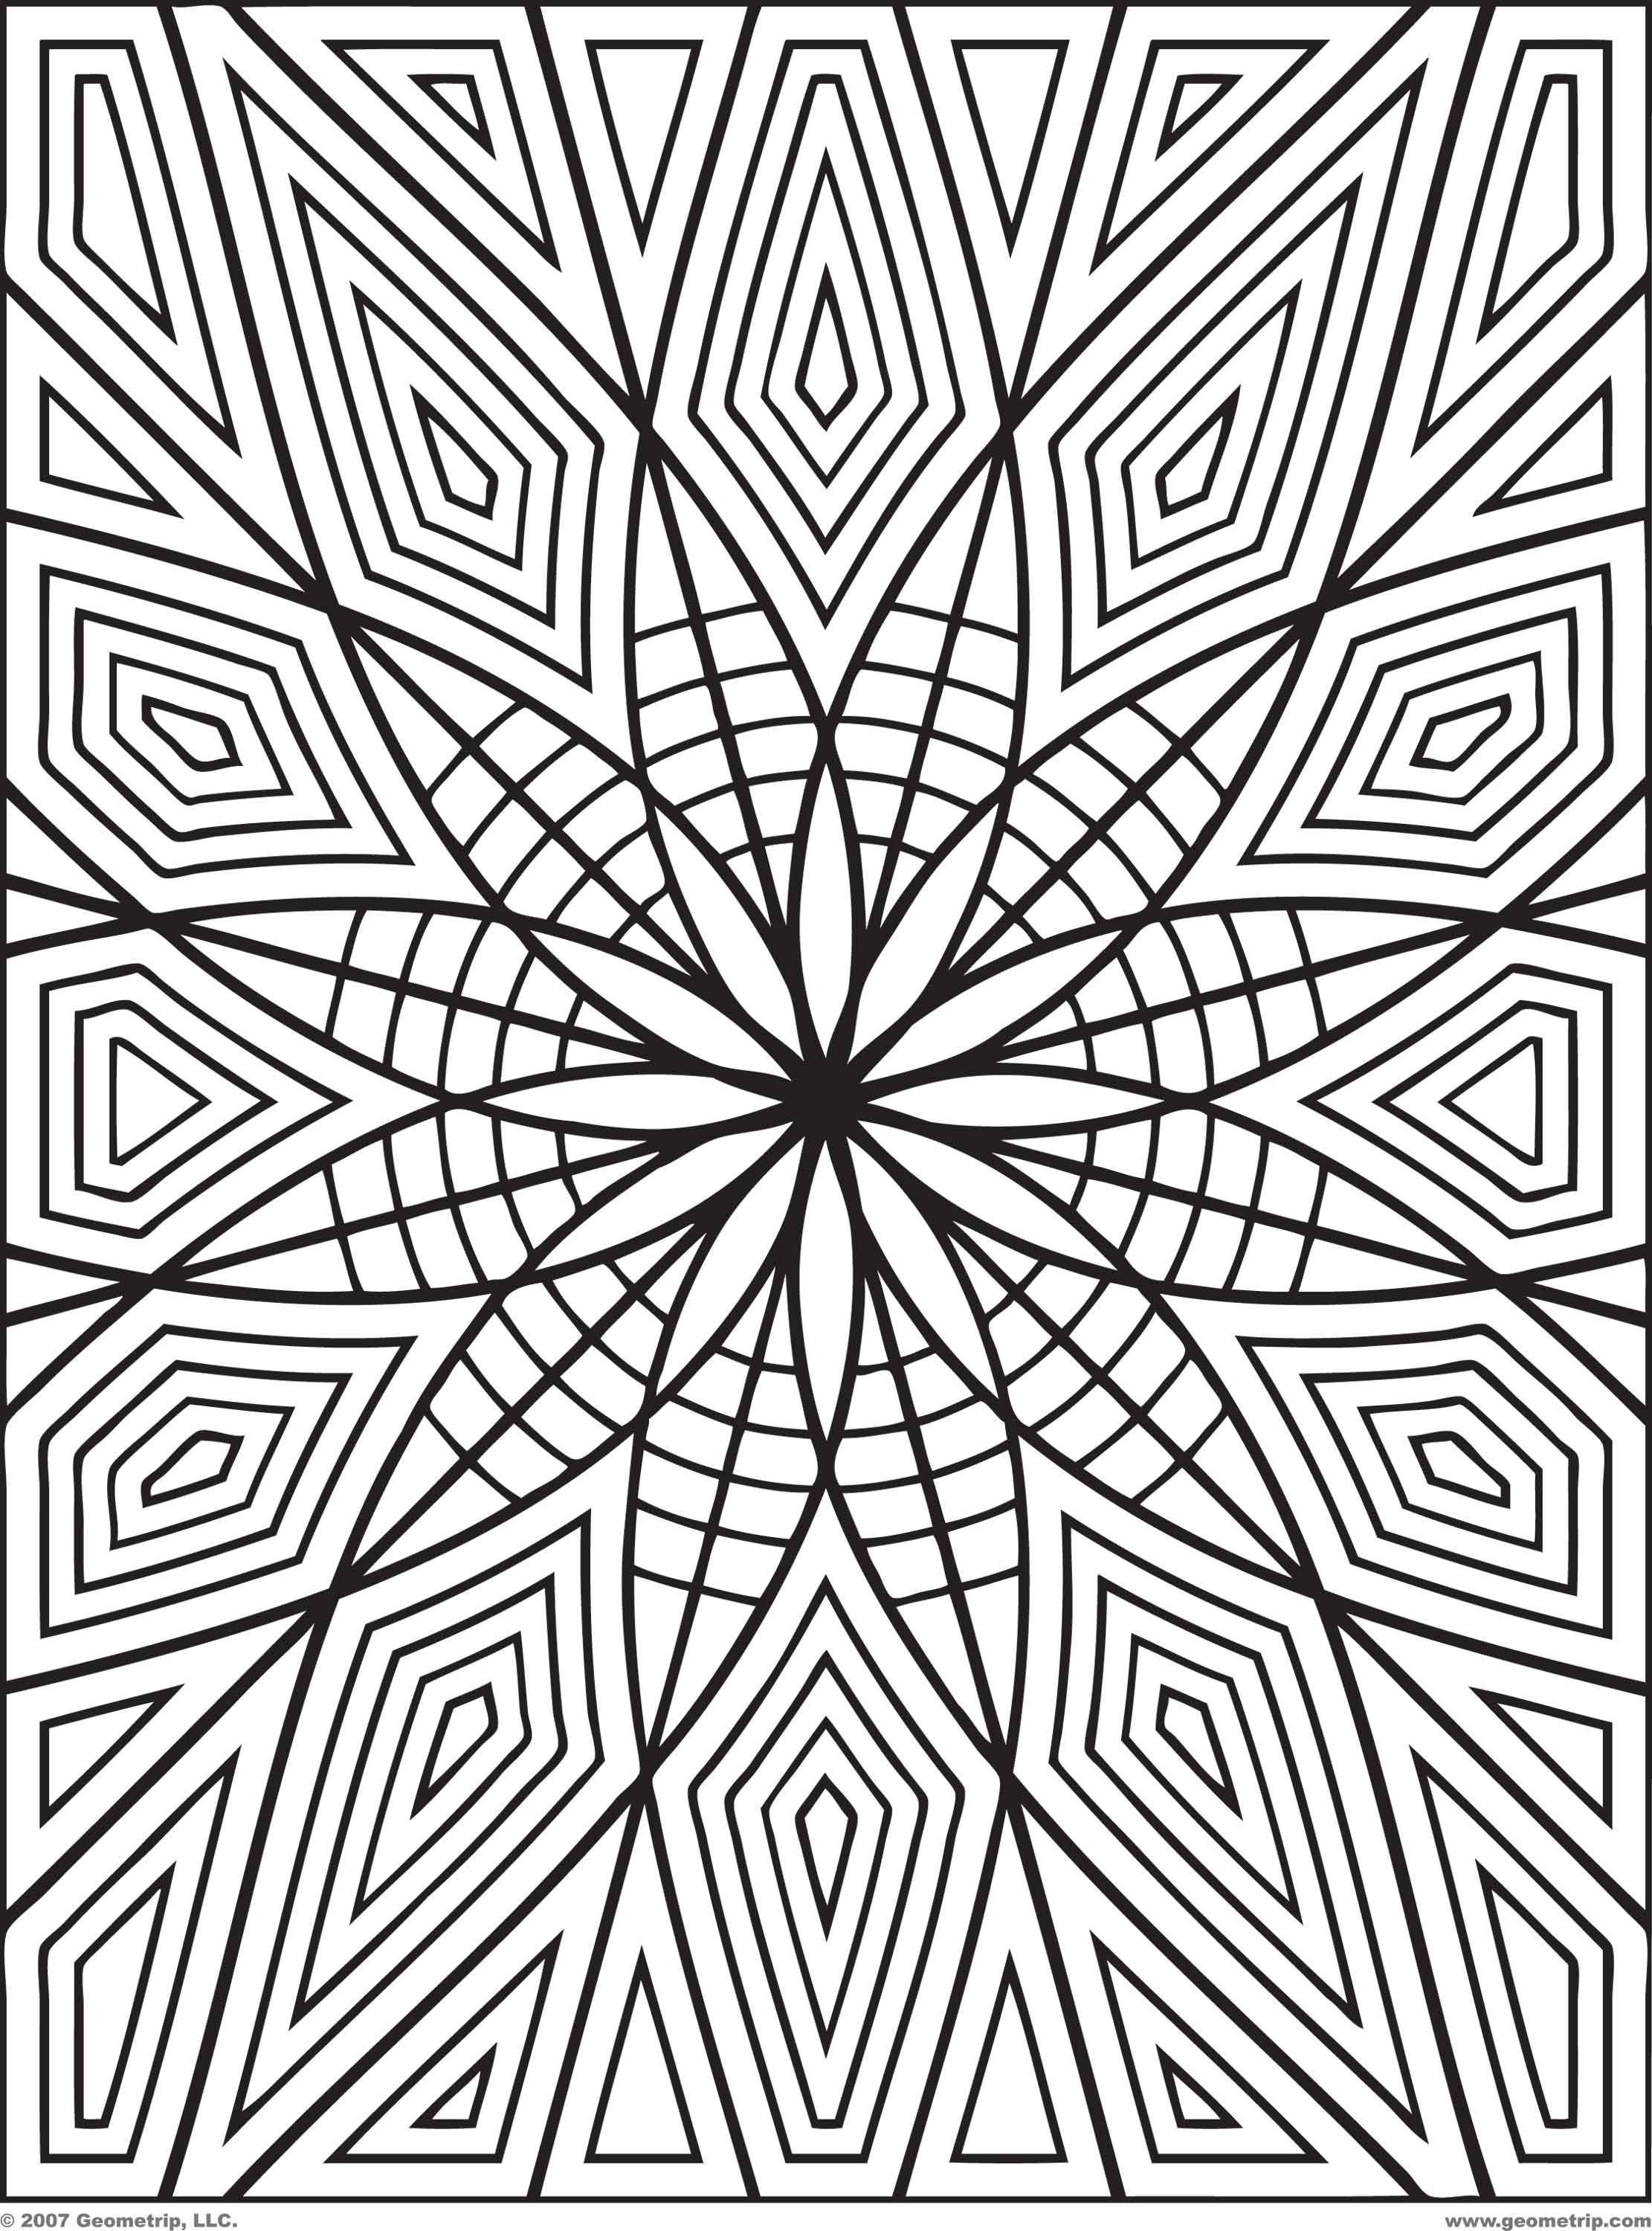 Lotus designs coloring book - Geometric Design Coloring Pages Geometric Coloring Pages Pdf Pic 1 Hawaiidermatology Com 470 Kb 2222